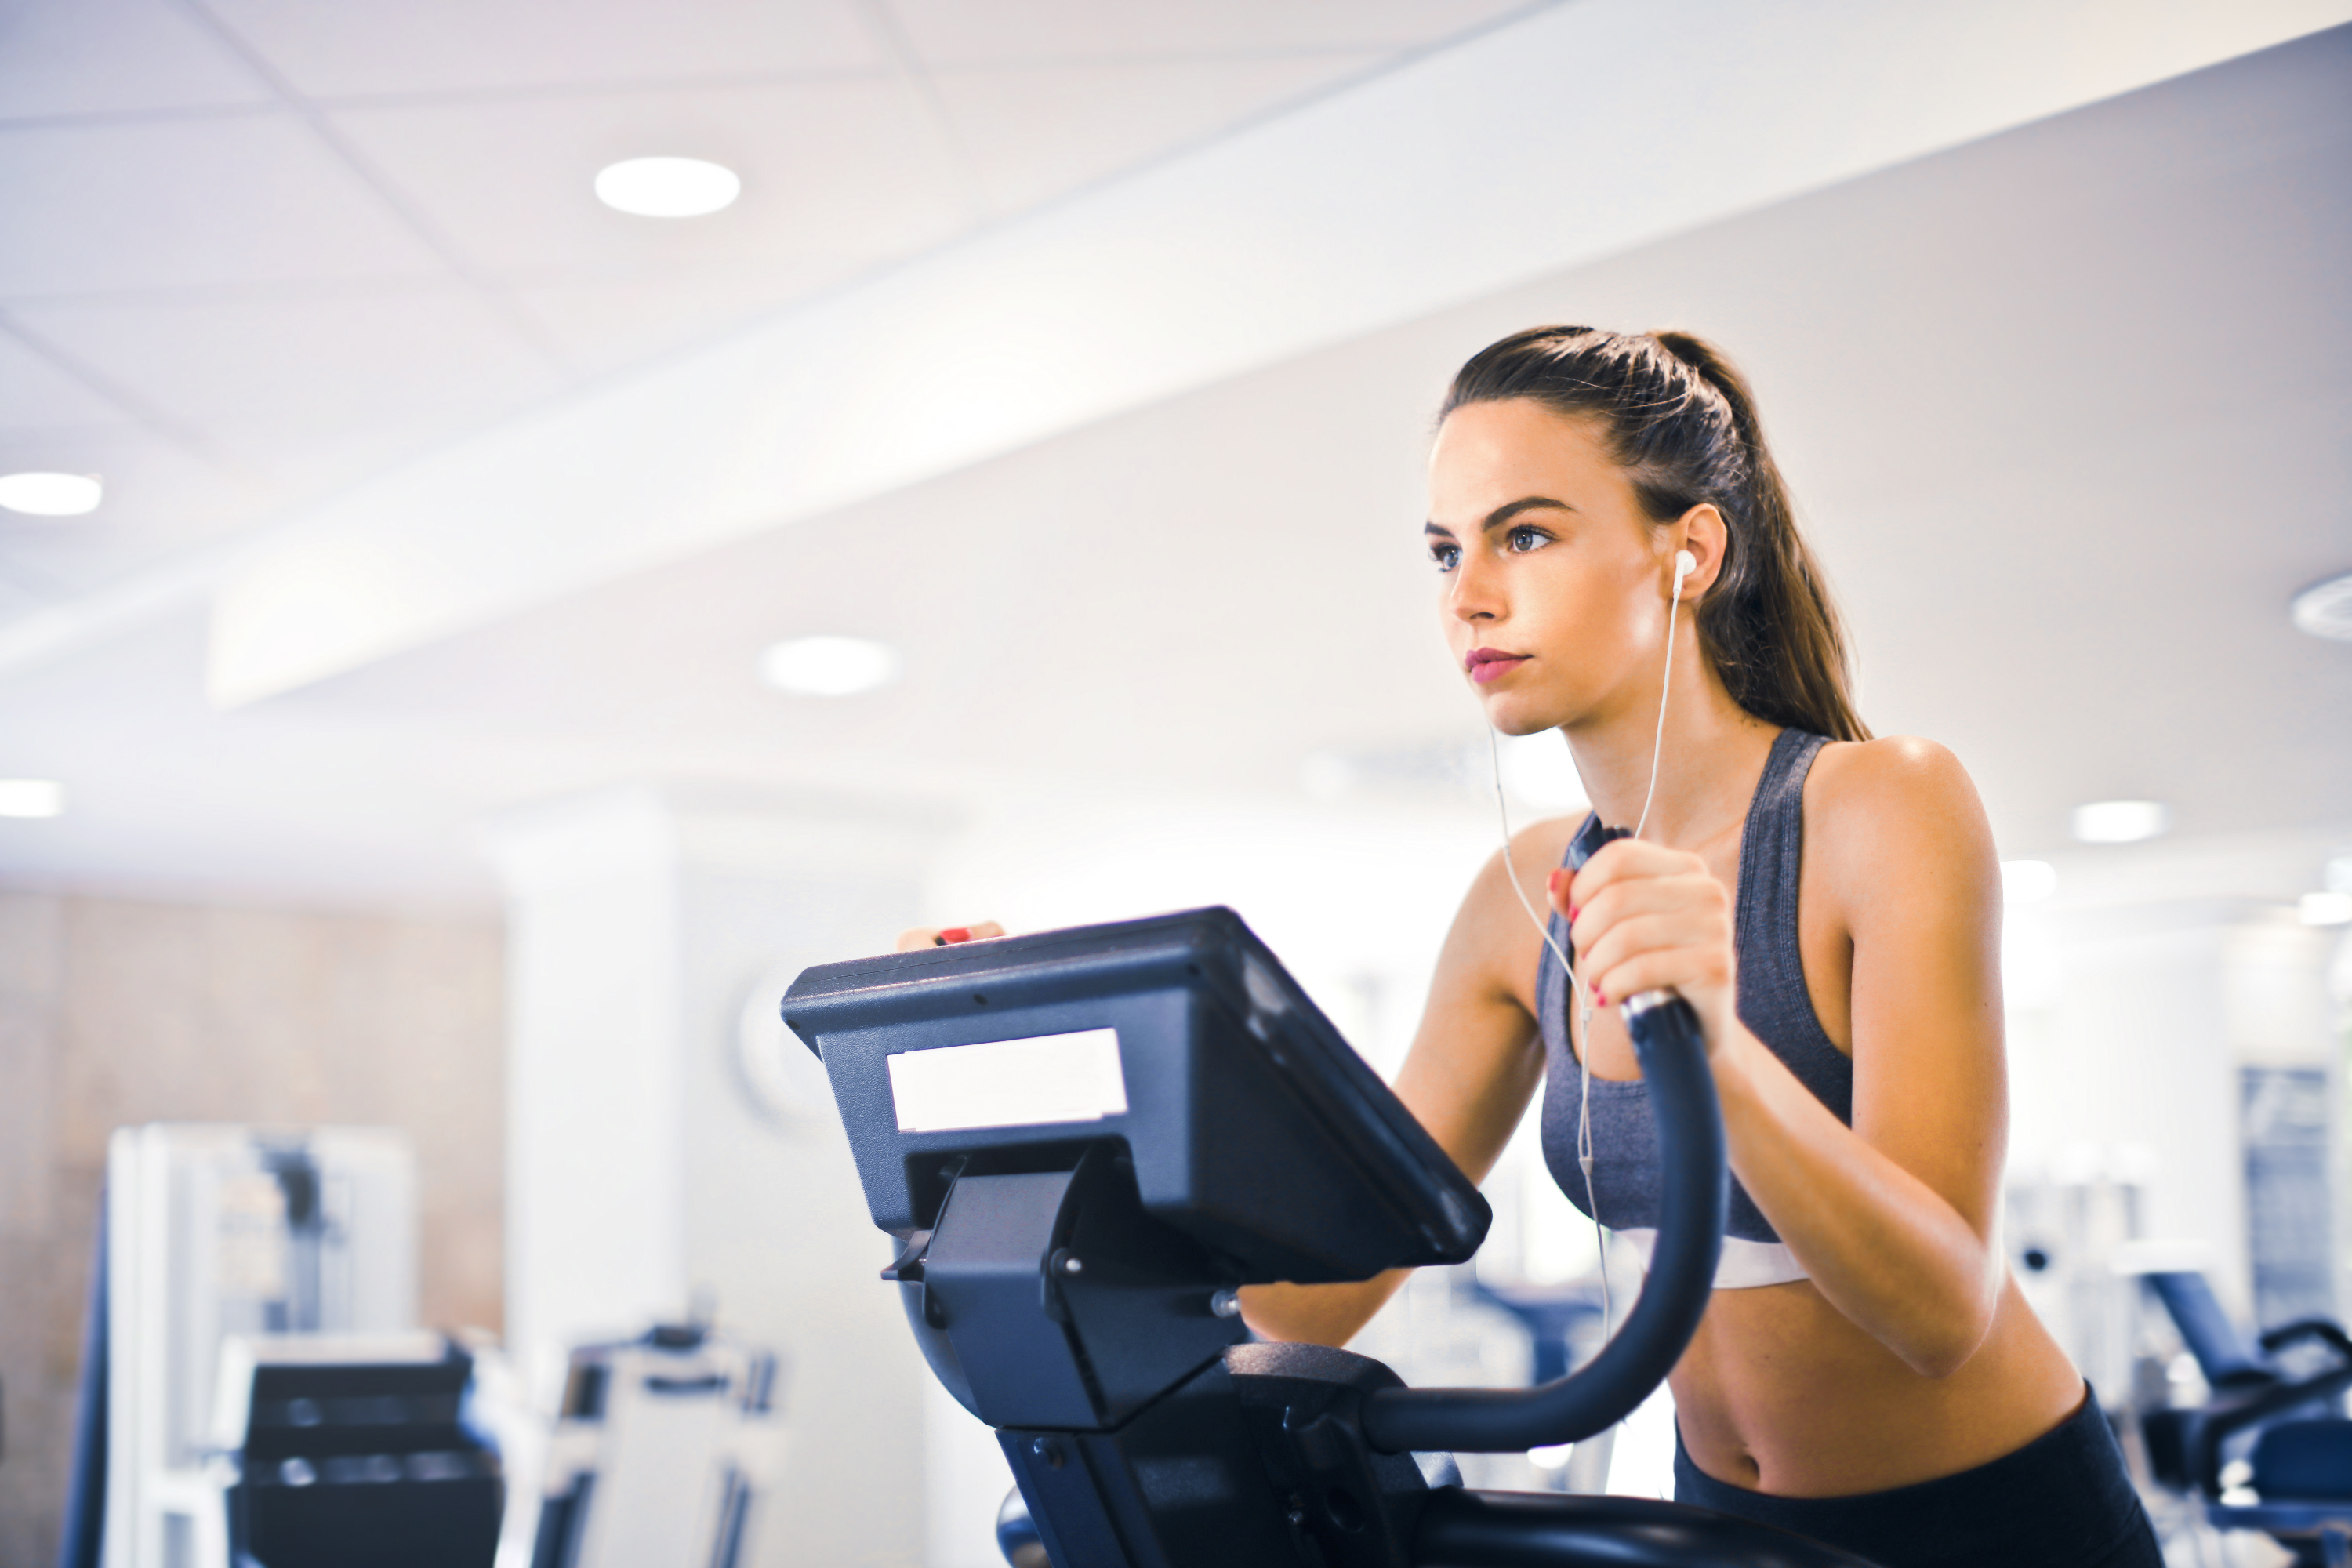 How To Workout at GYM To Lose Weight